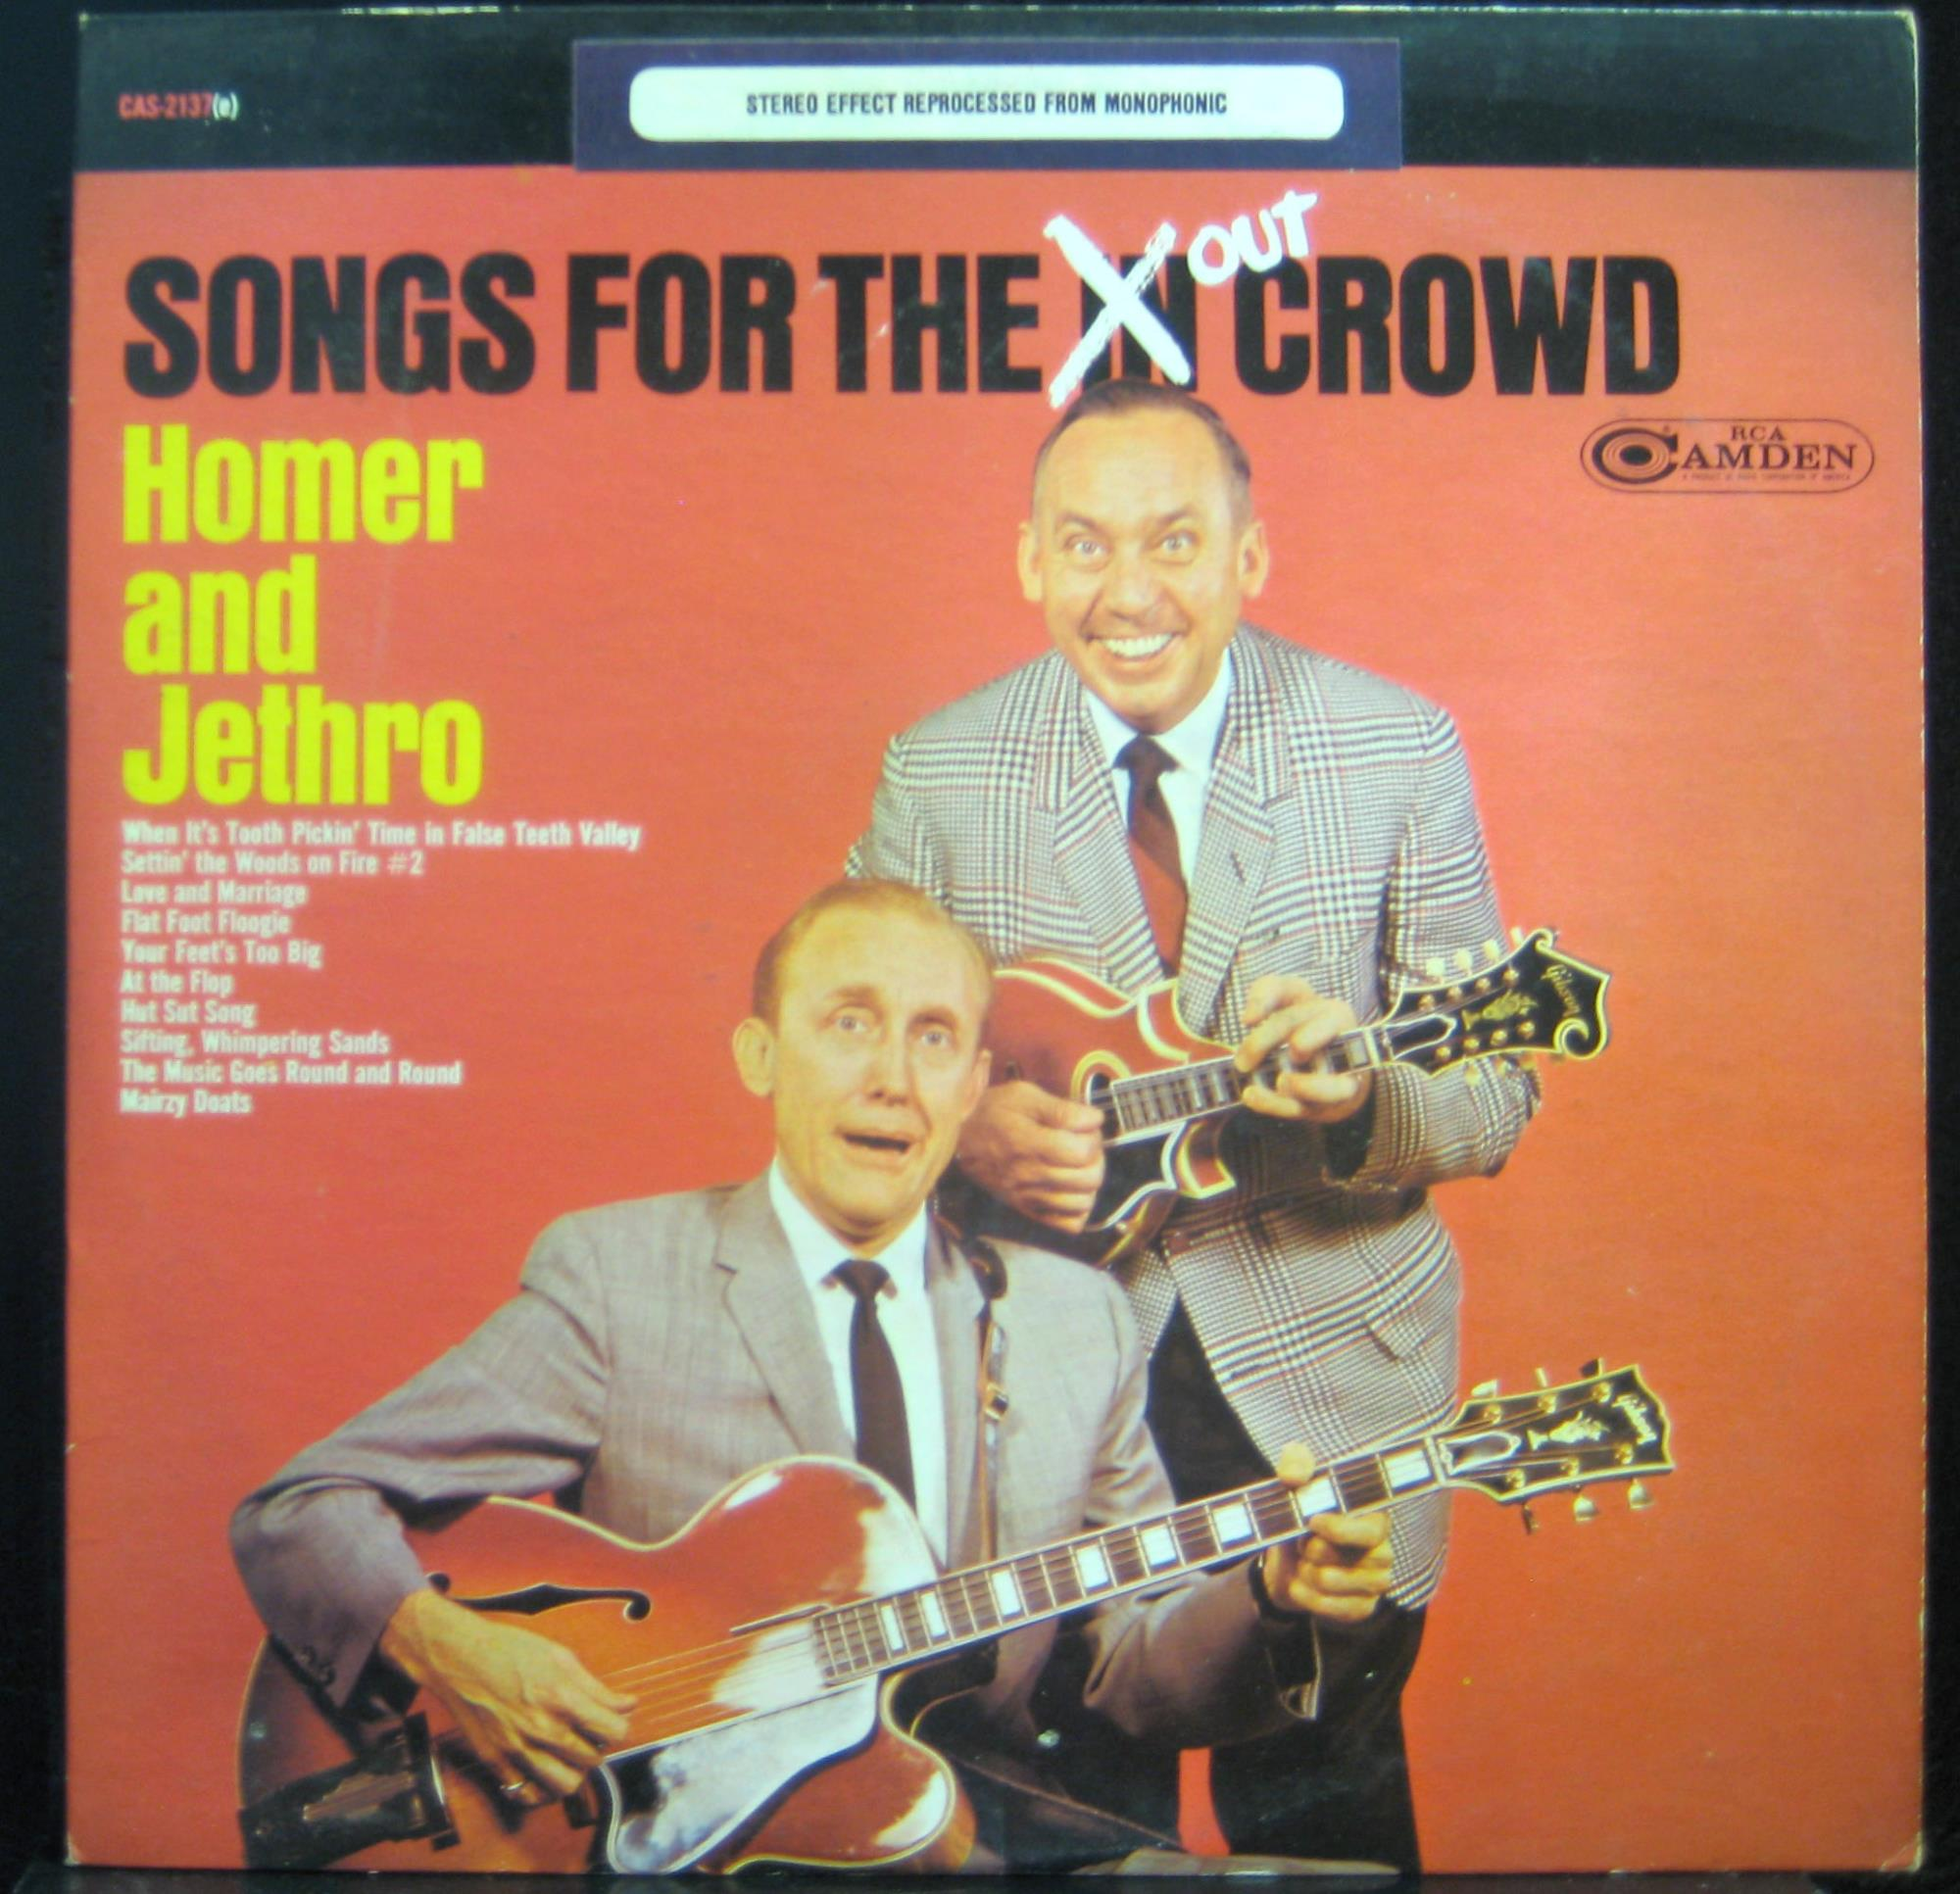 HOMER & JETHRO - Homer & Jethro Songs For The Out Crowd Lp Vg Cas 2137 Vinyl 1967 Record (songs For The Out Crowd